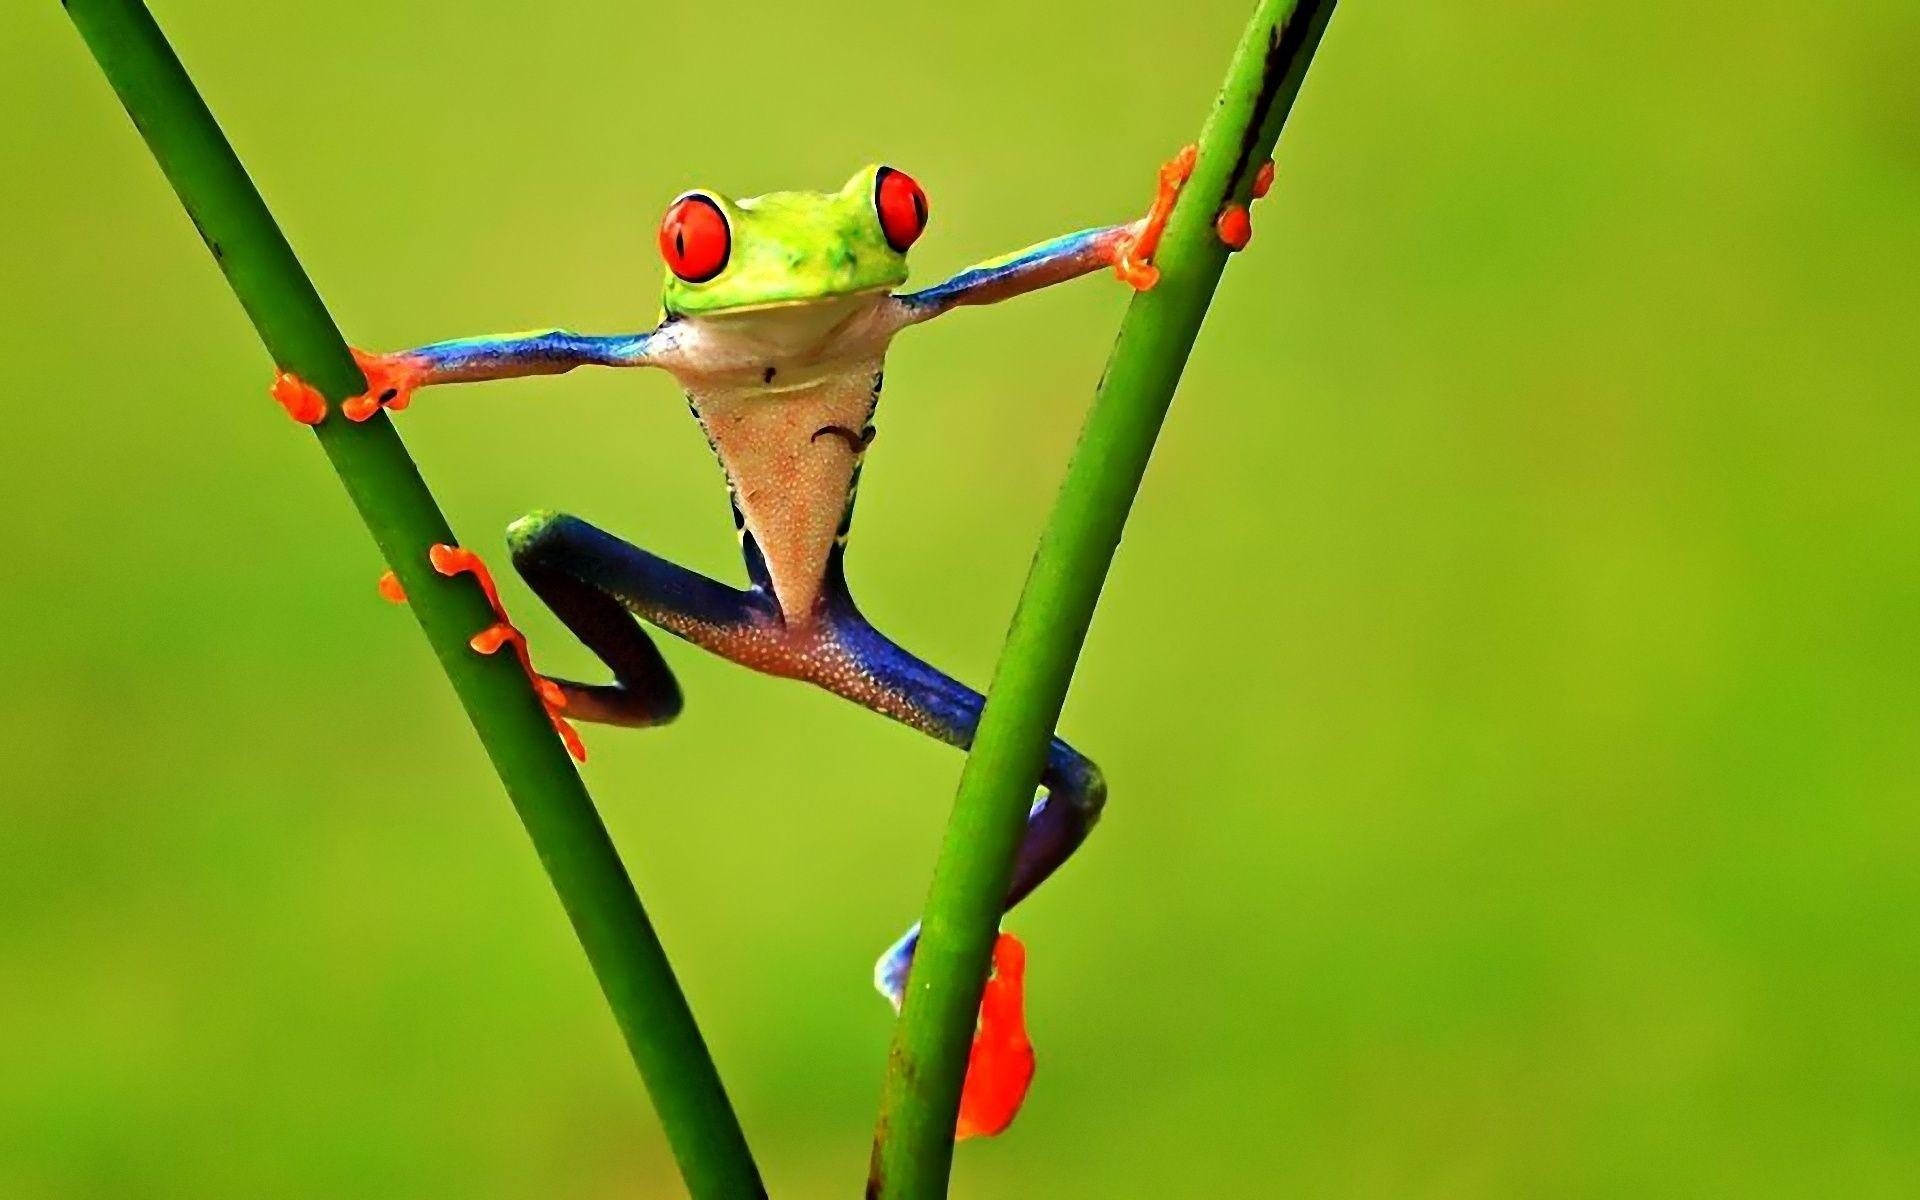 Frog Wallpapers 11918 1920x1200 px